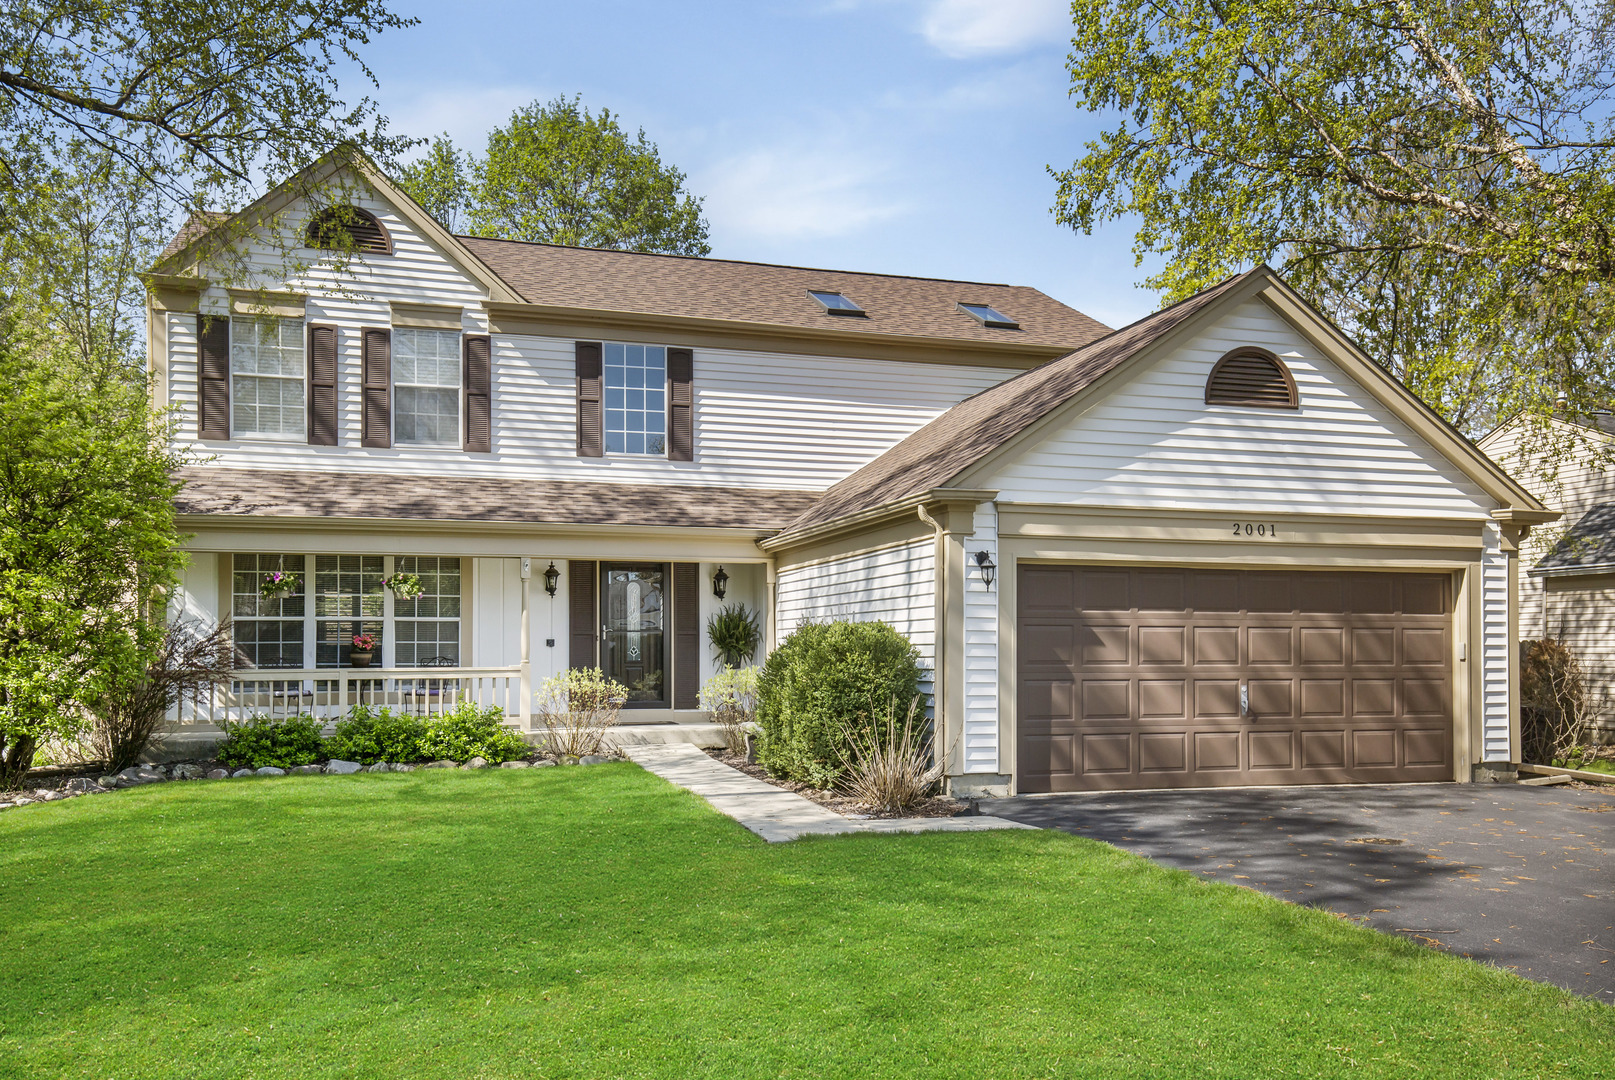 Photo for 2001 Cumberland Parkway, ALGONQUIN, IL 60102 (MLS # 10379695)